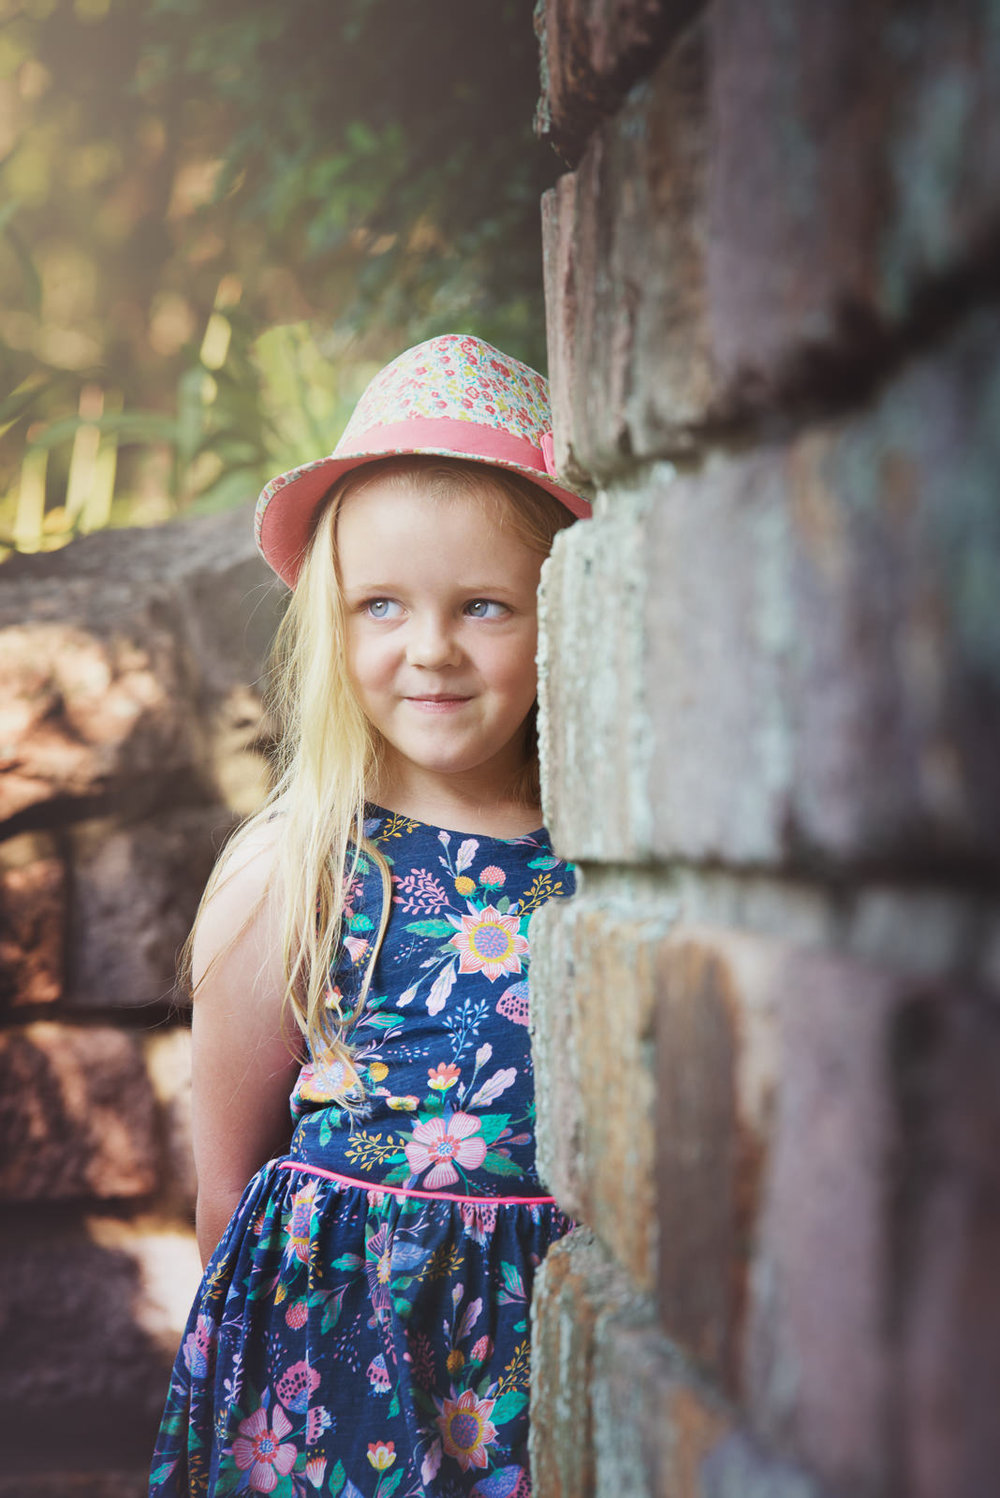 portrait of young girl standing against urban stone wall